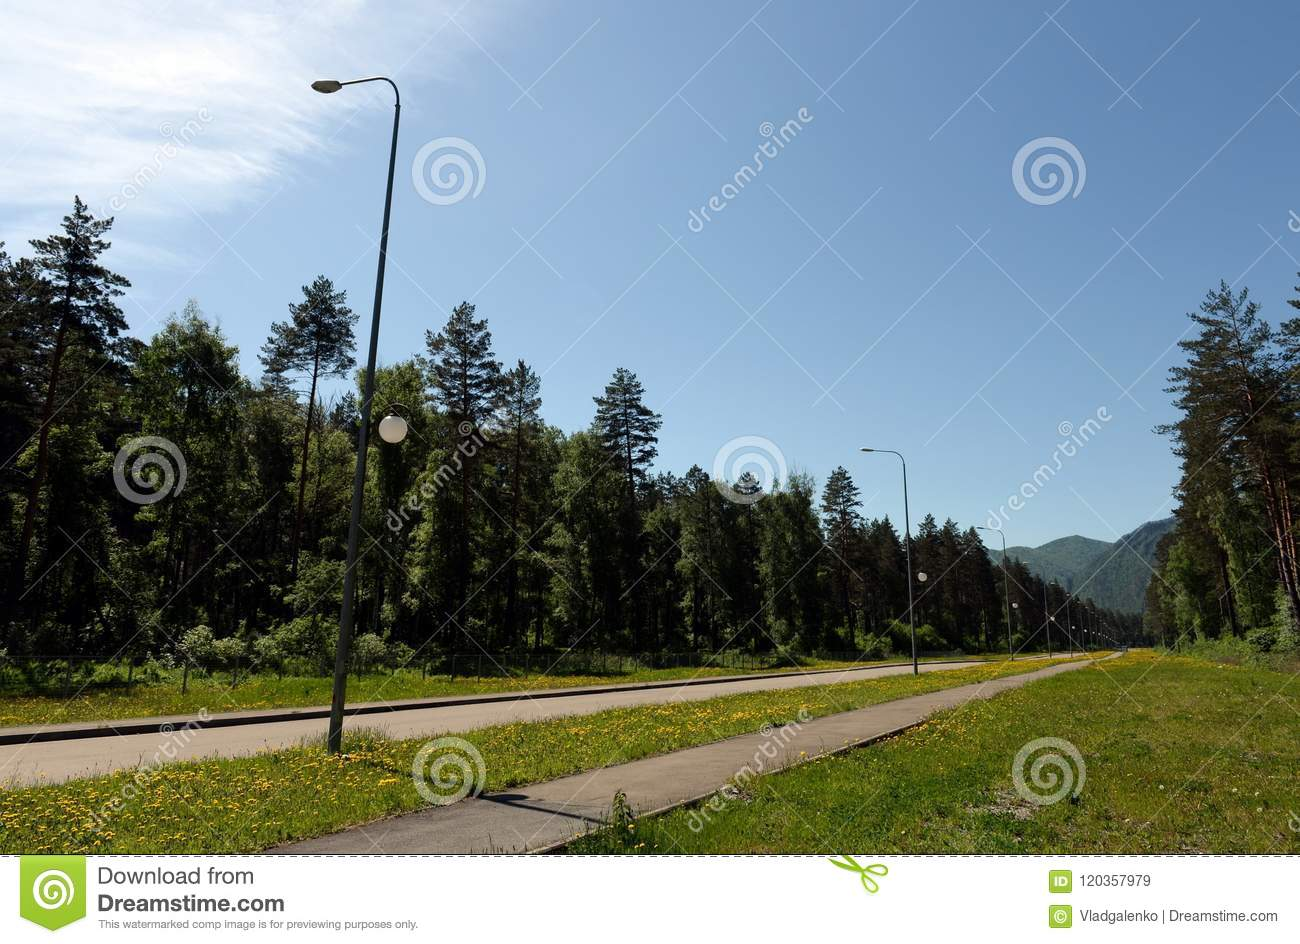 What are recreational zones? Tourist and recreational special economic zones of the Russian Federation? 4